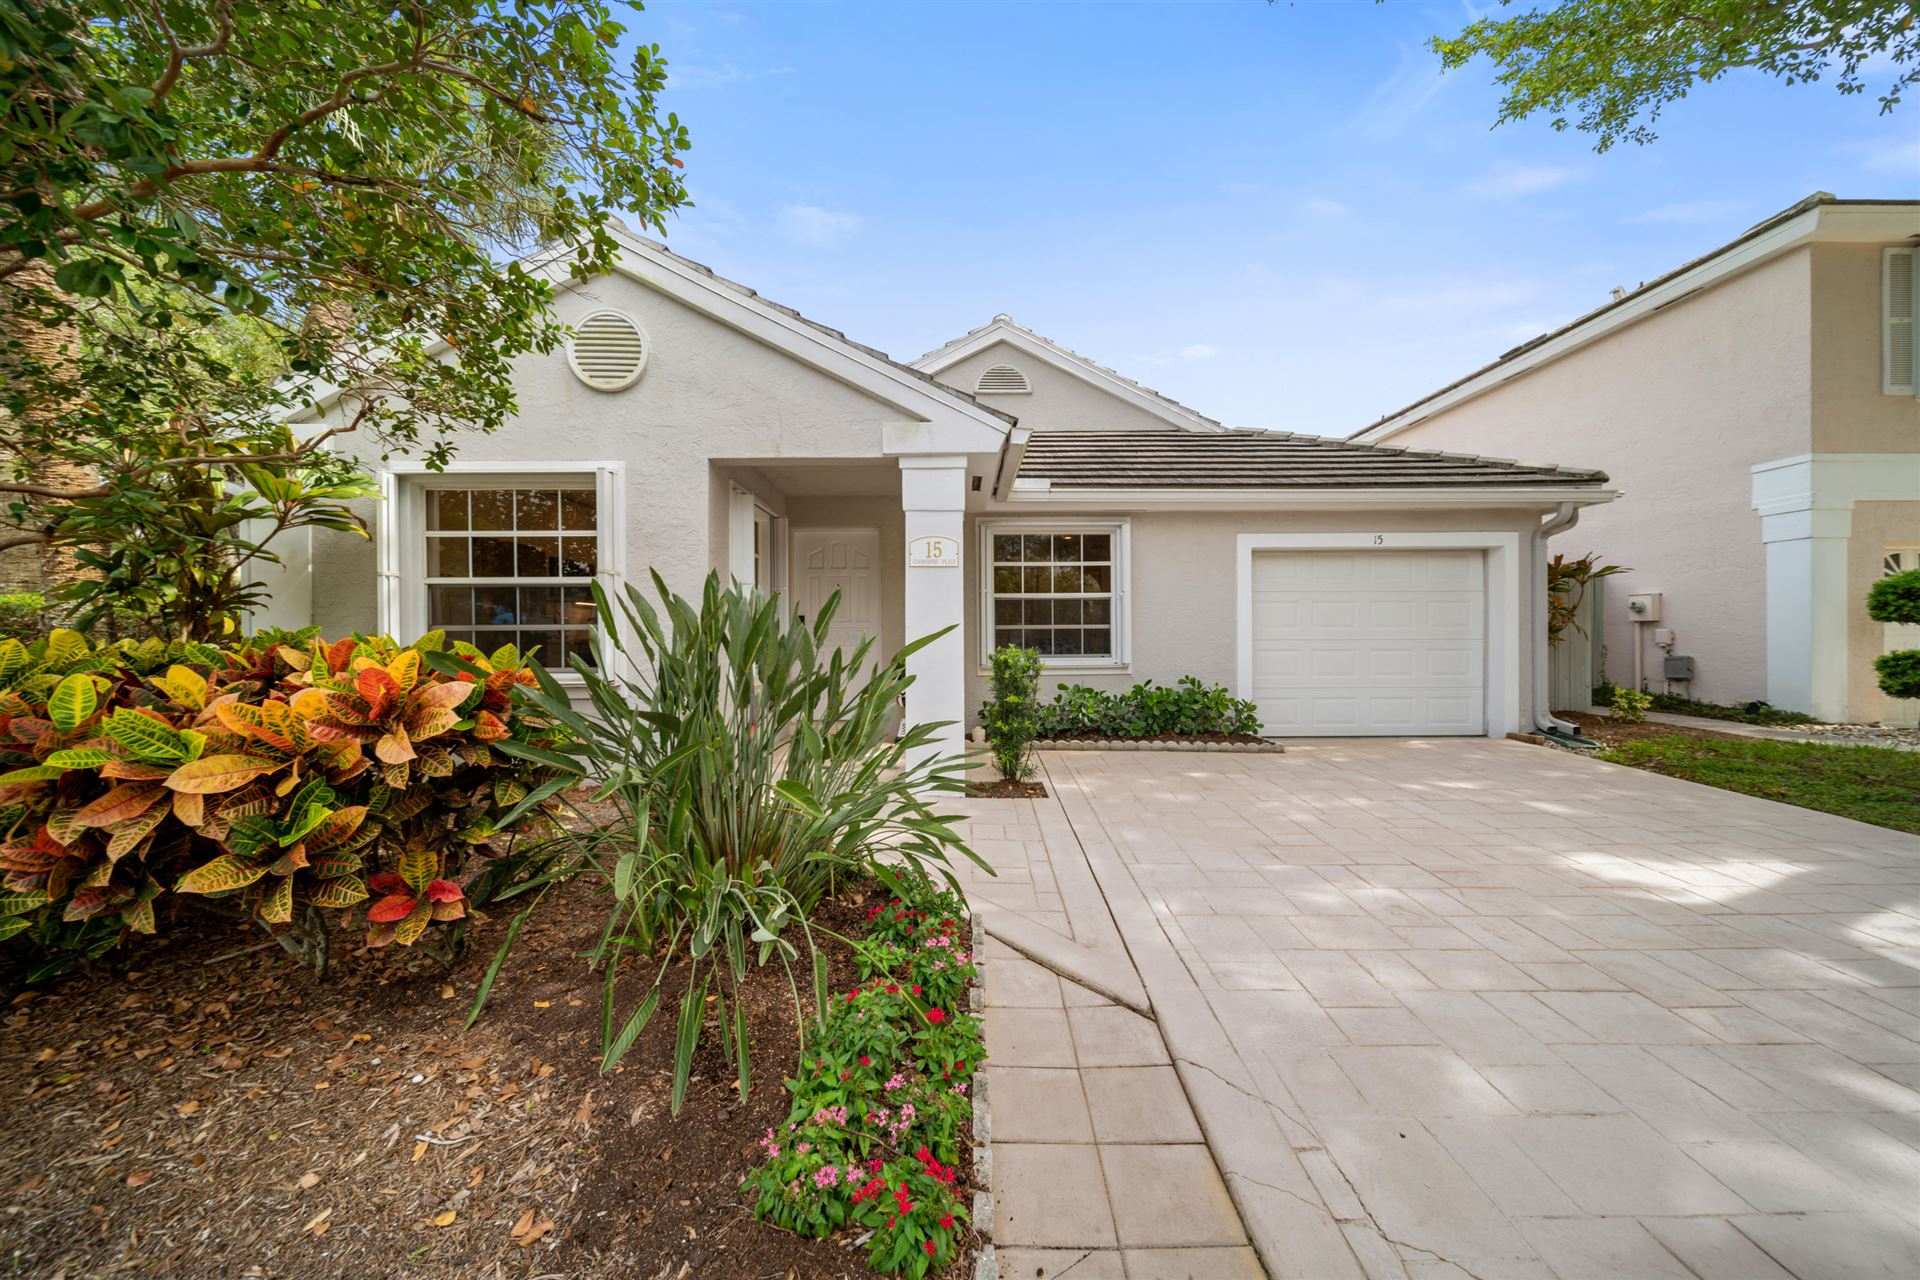 Photo of 15 Commodore Place, Palm Beach Gardens, FL 33418 (MLS # RX-10730561)